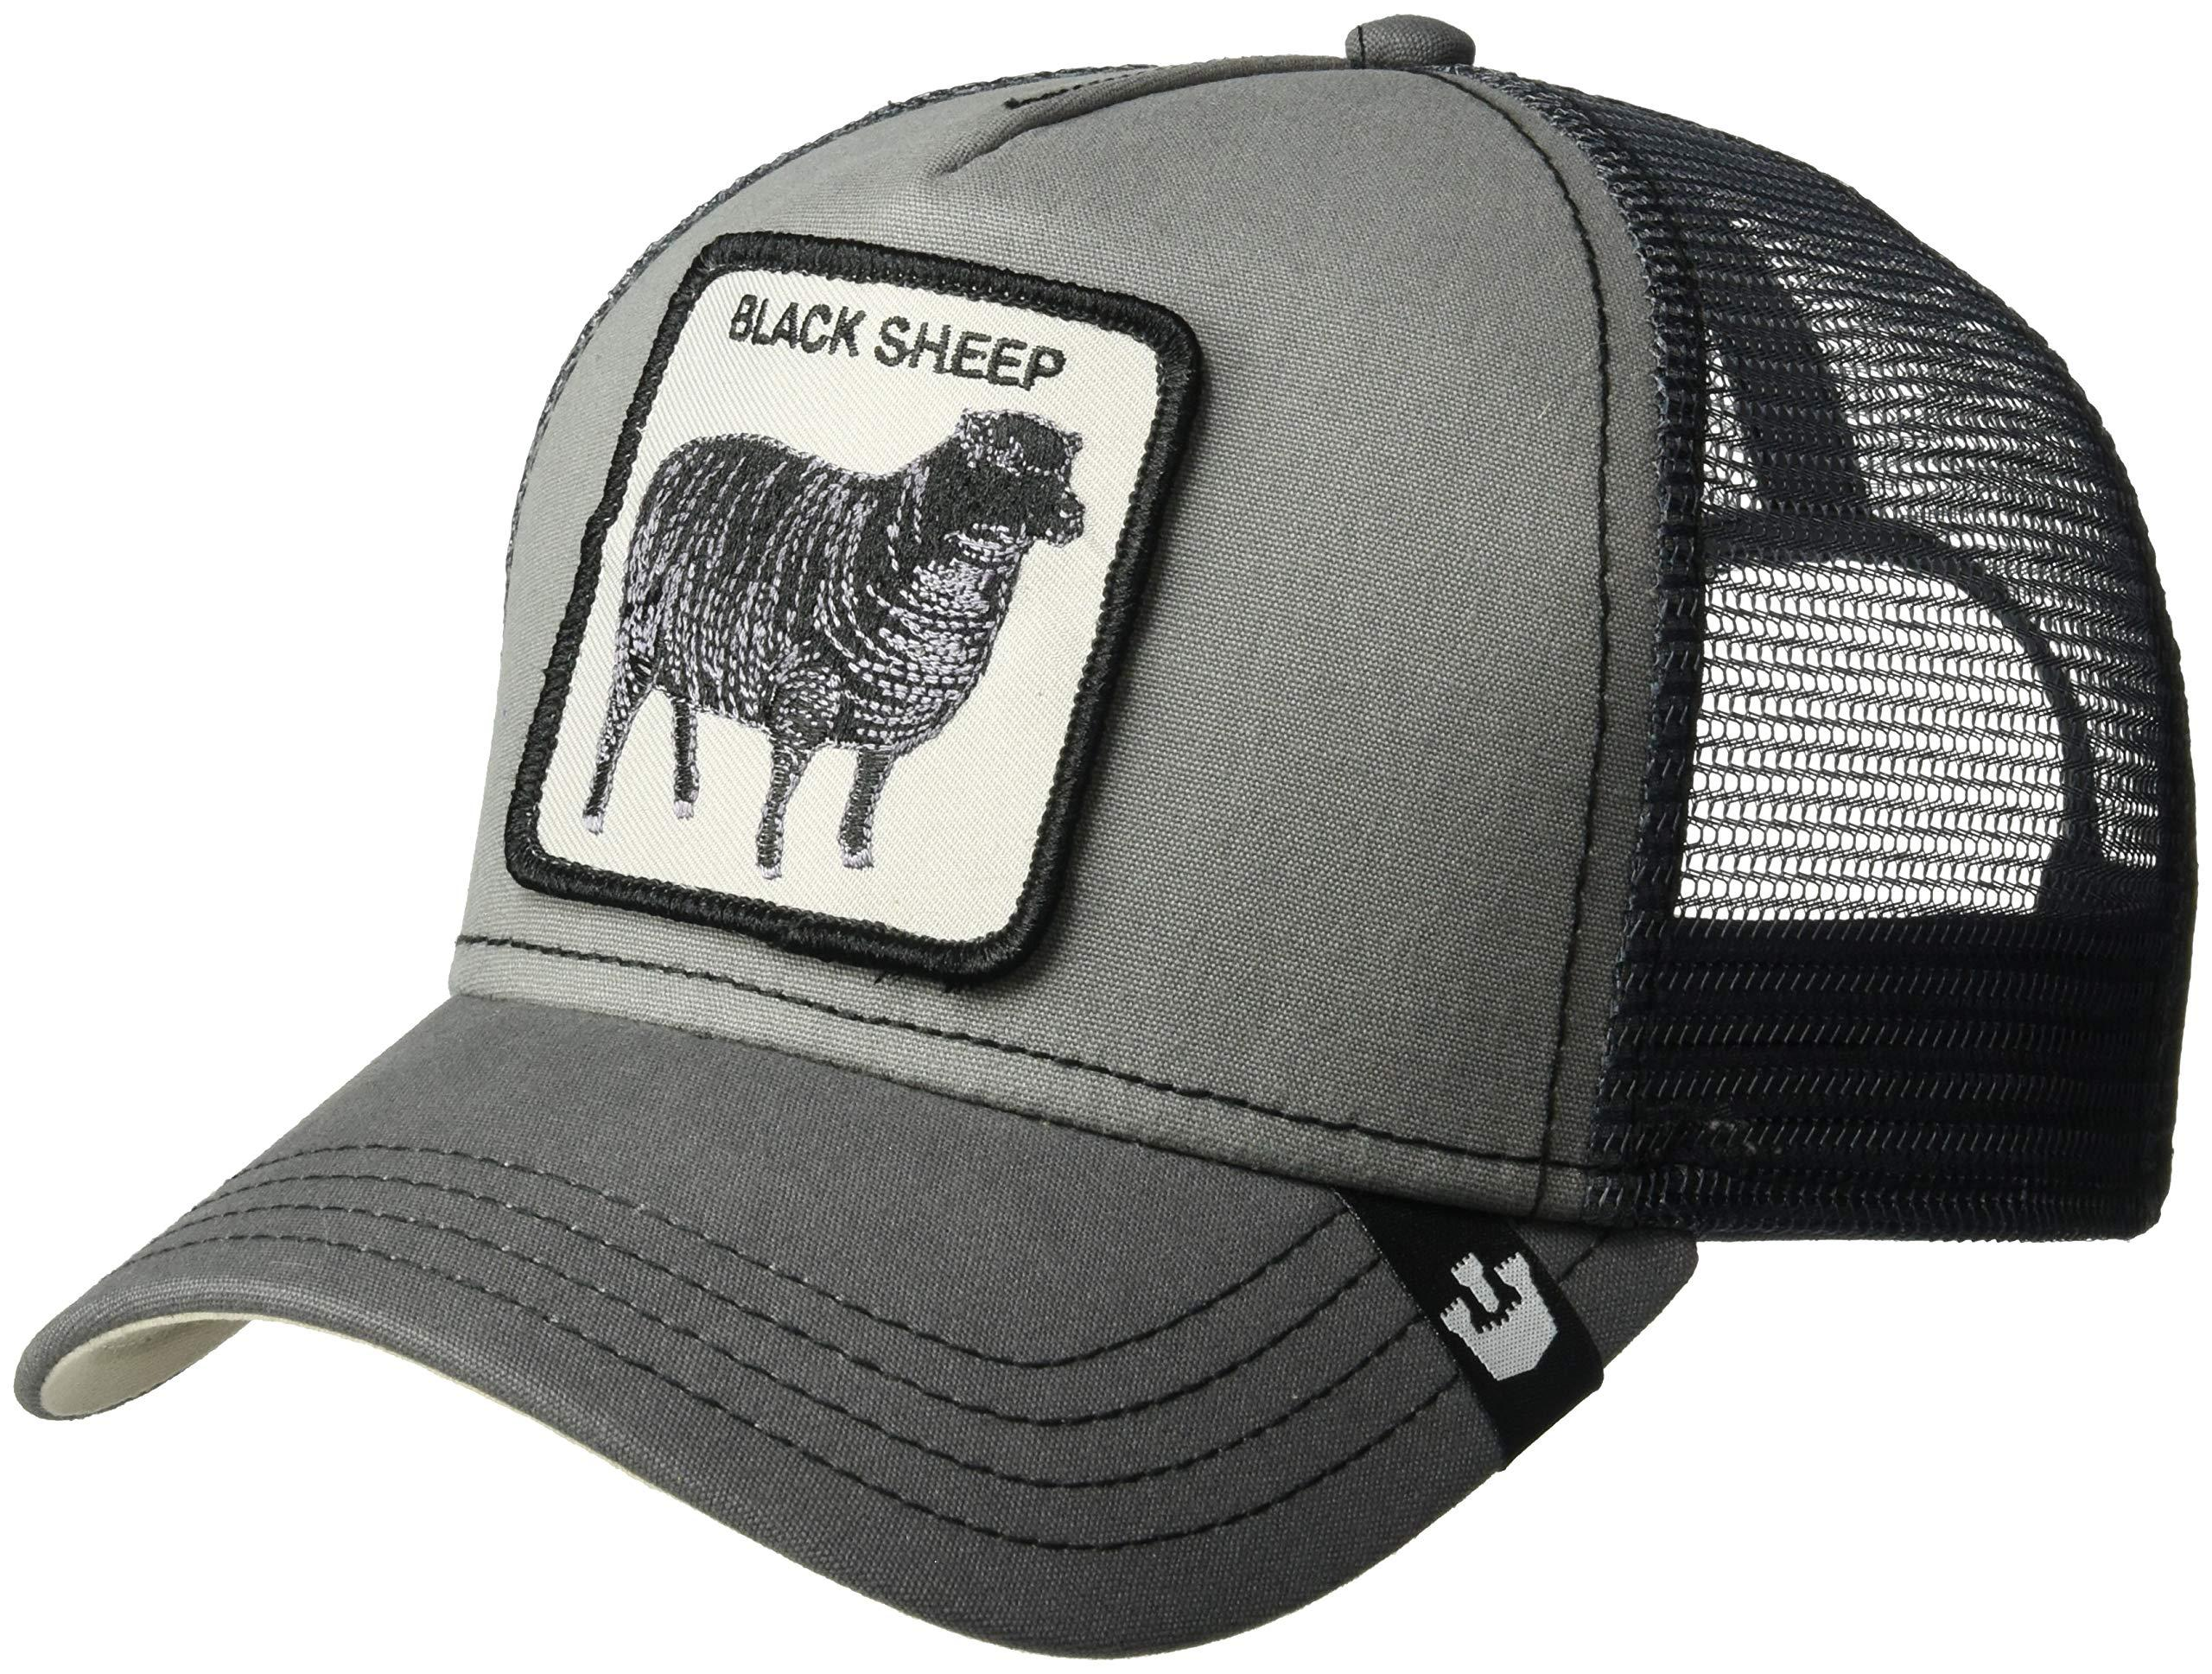 d2879122 Details about Goorin Bros. Men's Animal Farm Snap Back Trucker Hat, Gray  Sheep, One Size